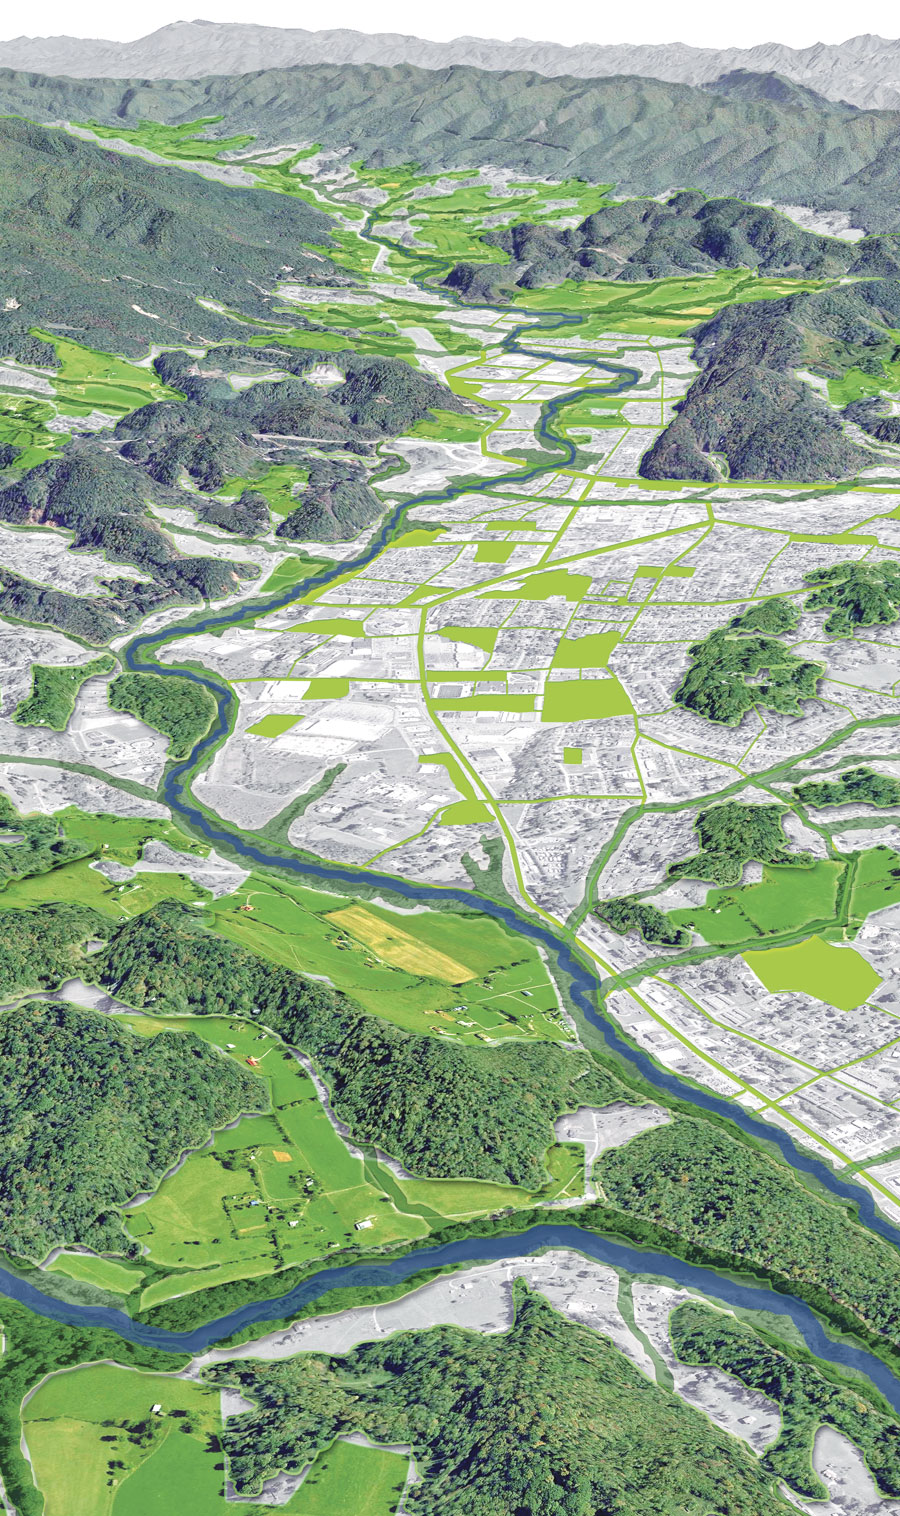 Green infrastructure is a strategically planned and managed network of open spaces, watersheds, wildlife habitats, parks, and other areas. (Image courtesy of Zach Hill, Ecosystem Sciences, LLC.)